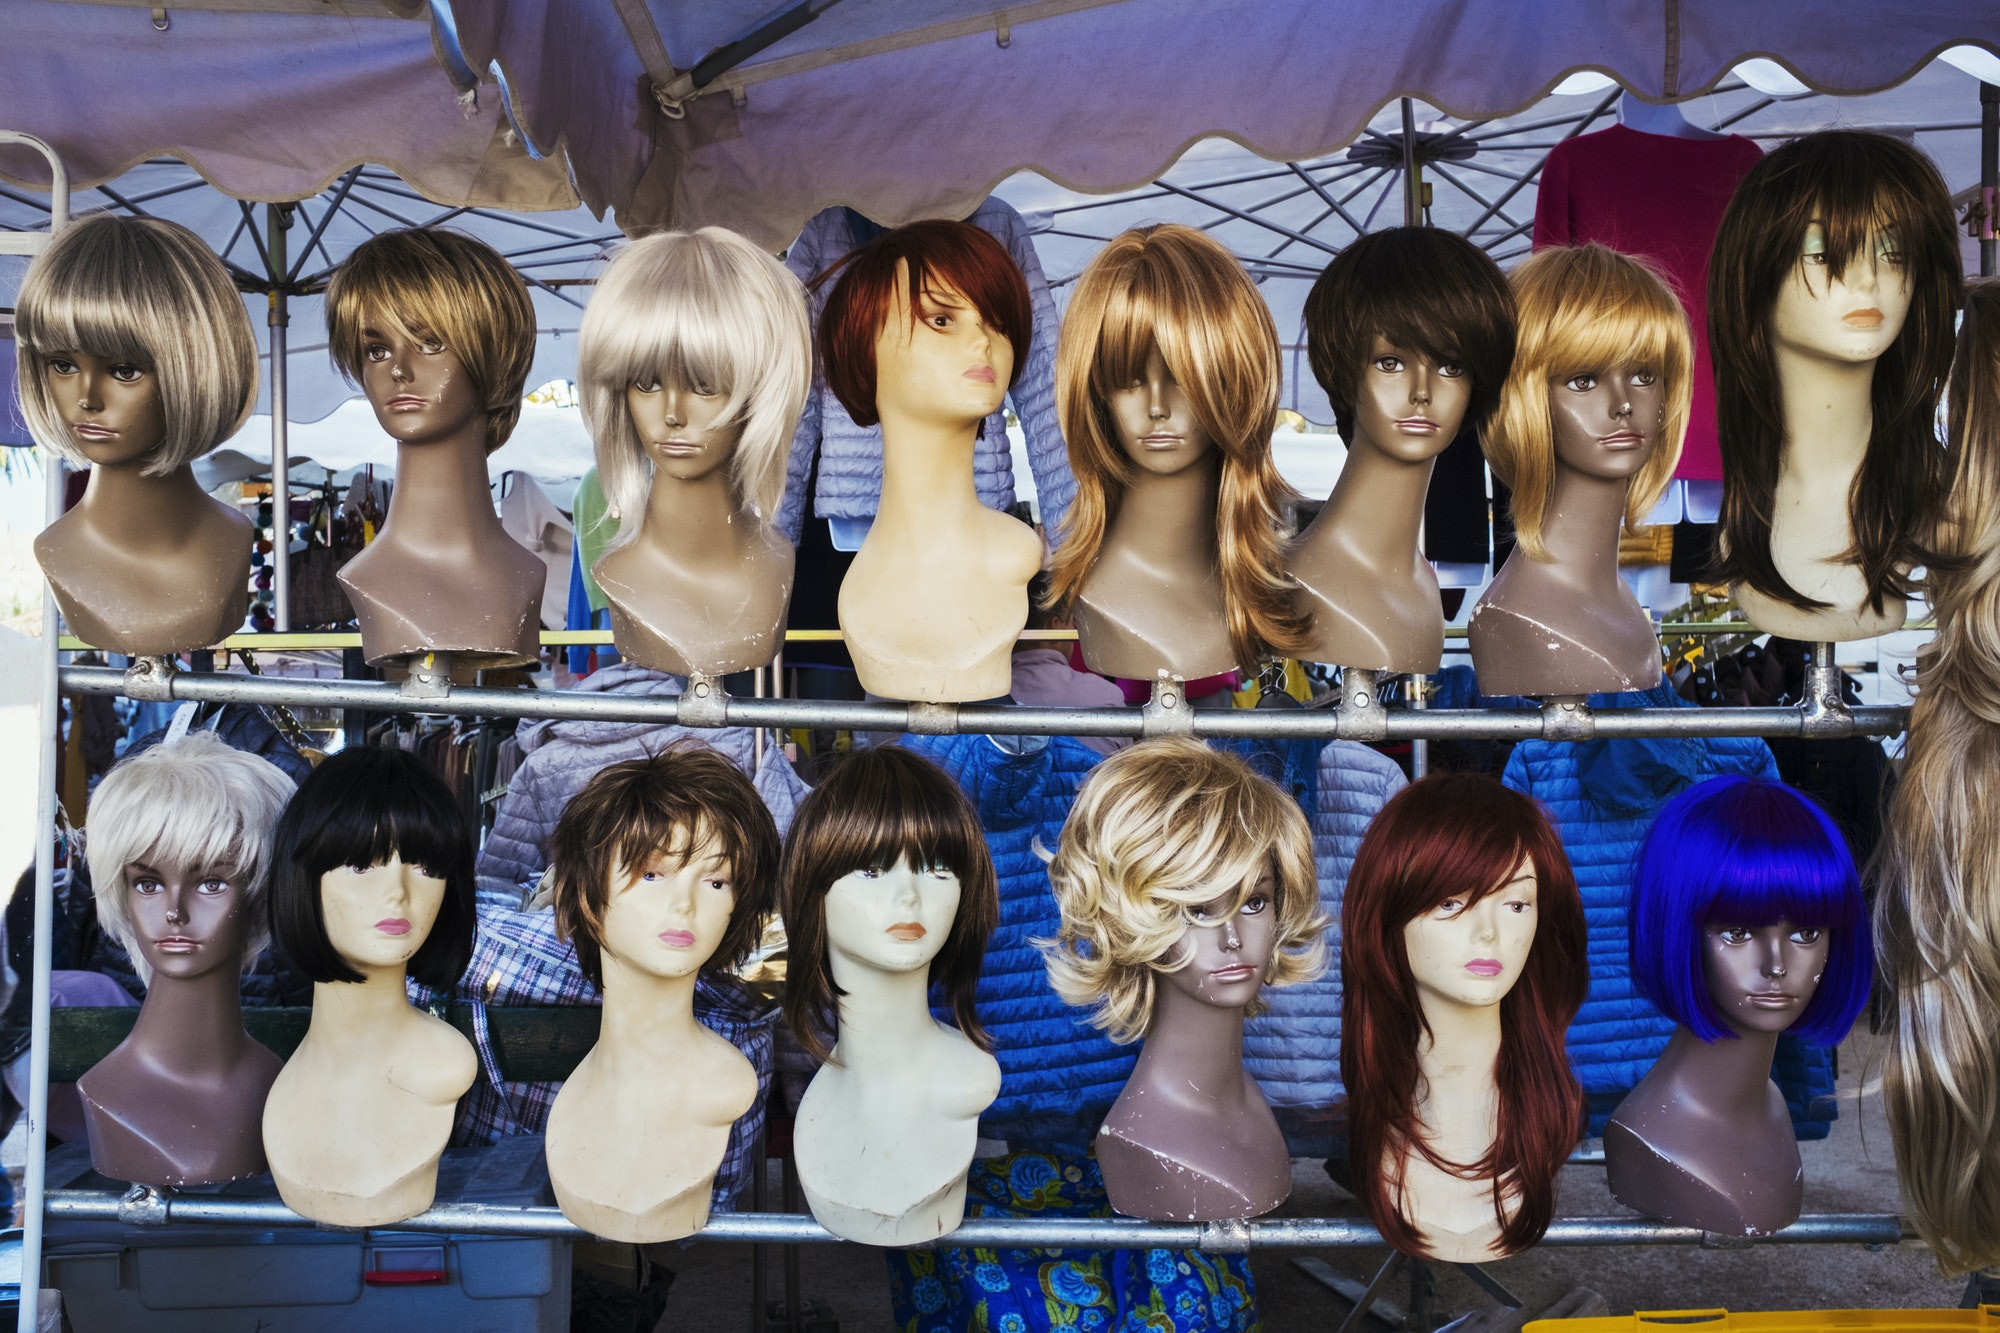 A wig stall, female mannequin heads and display of wigs.